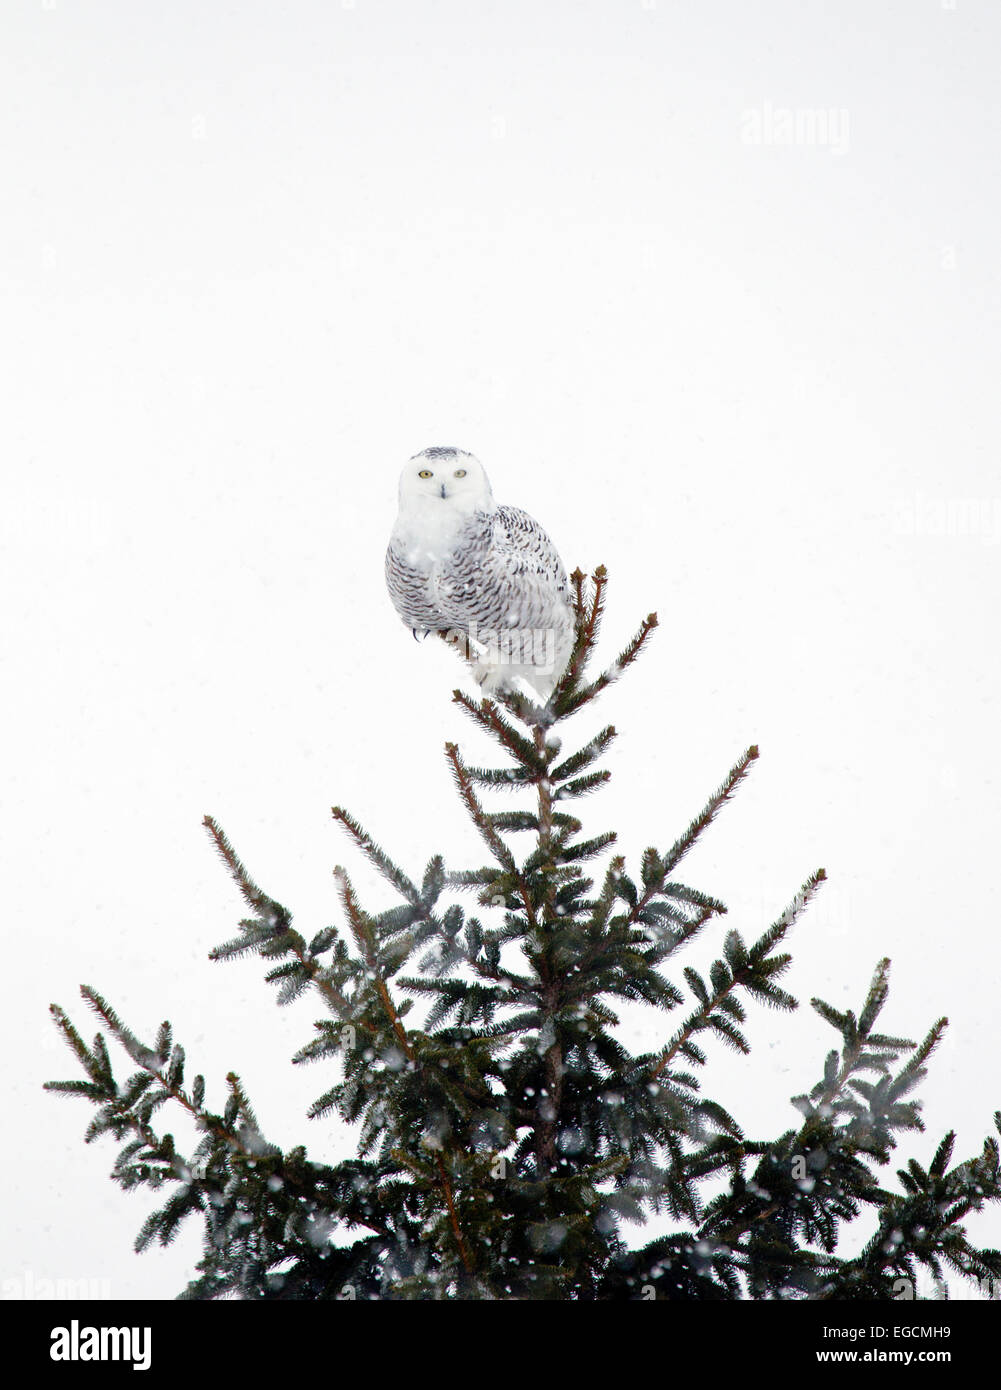 Snowy Owl Perched in the Top of a Pine Tree - Stock Image